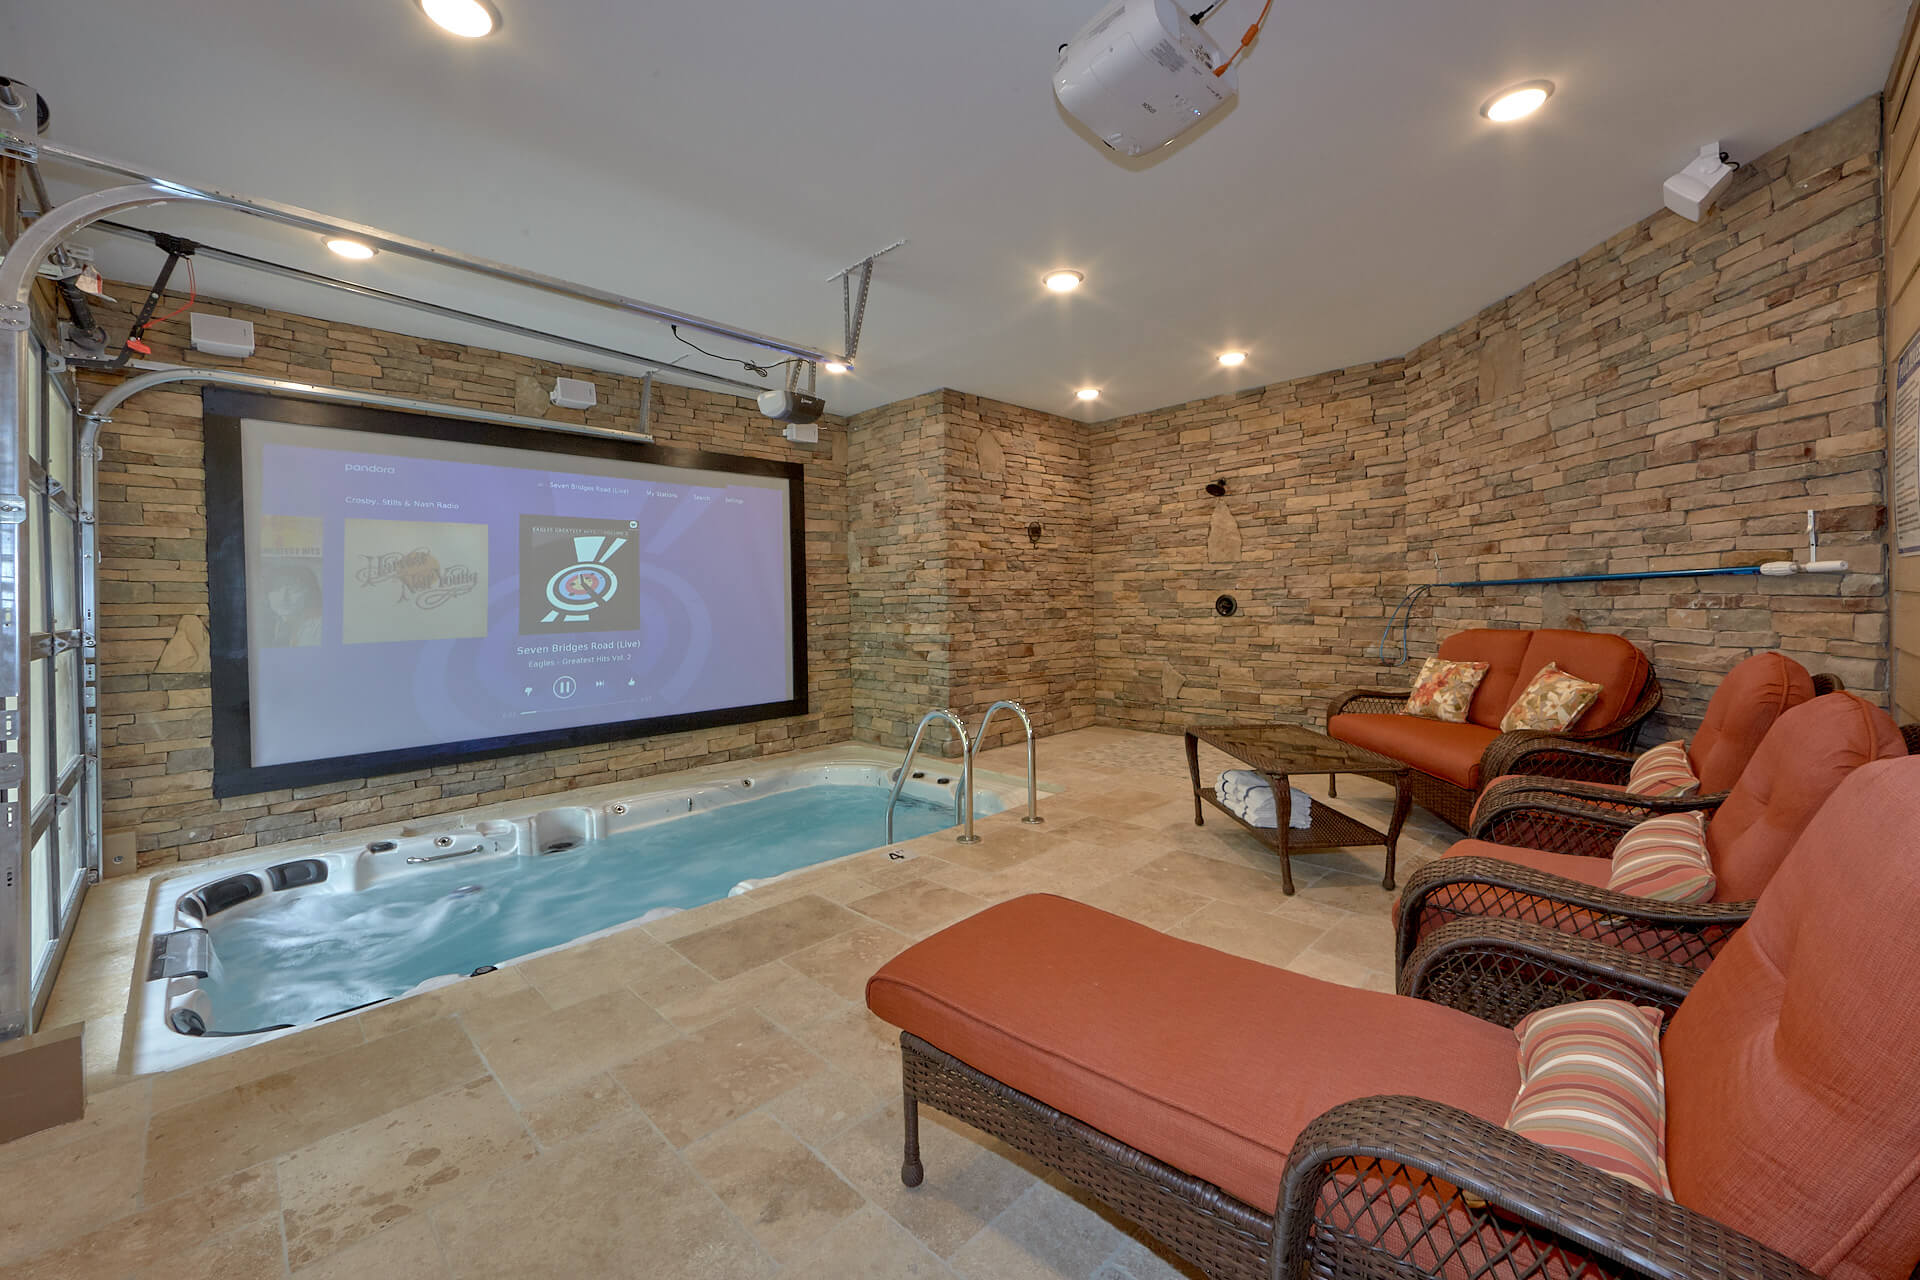 smoky gtlburgtennessee with gtlburg pools luxury chlets rentls tennessee cabin pet mount private chea cheap lurel indoor tn friendly mountain cb pool access cabins gatlinburg rentals